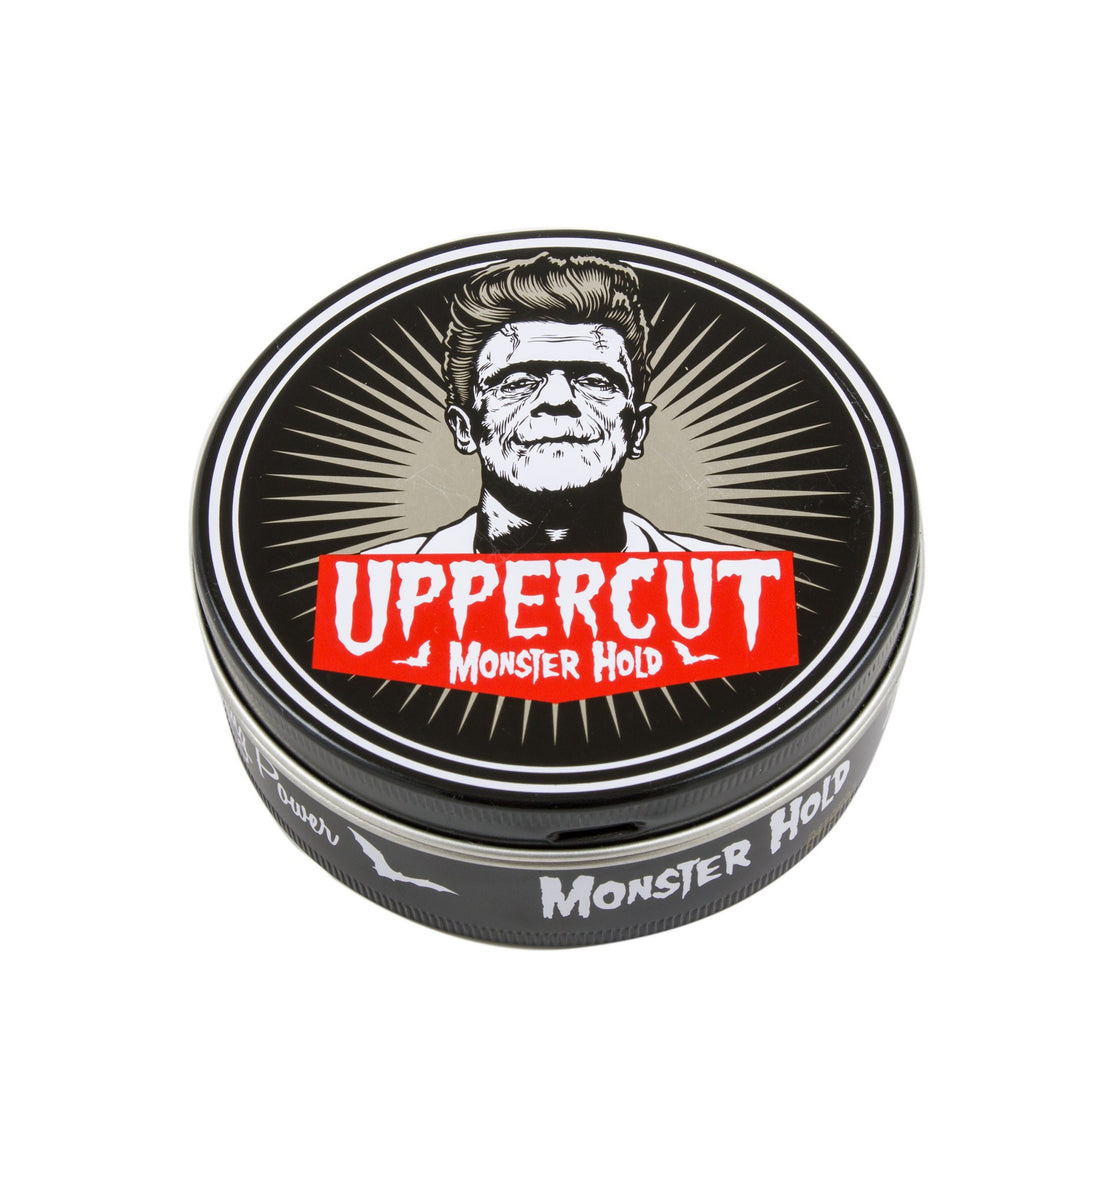 Uppercut Monster Hold - Grooming - Iron and Resin